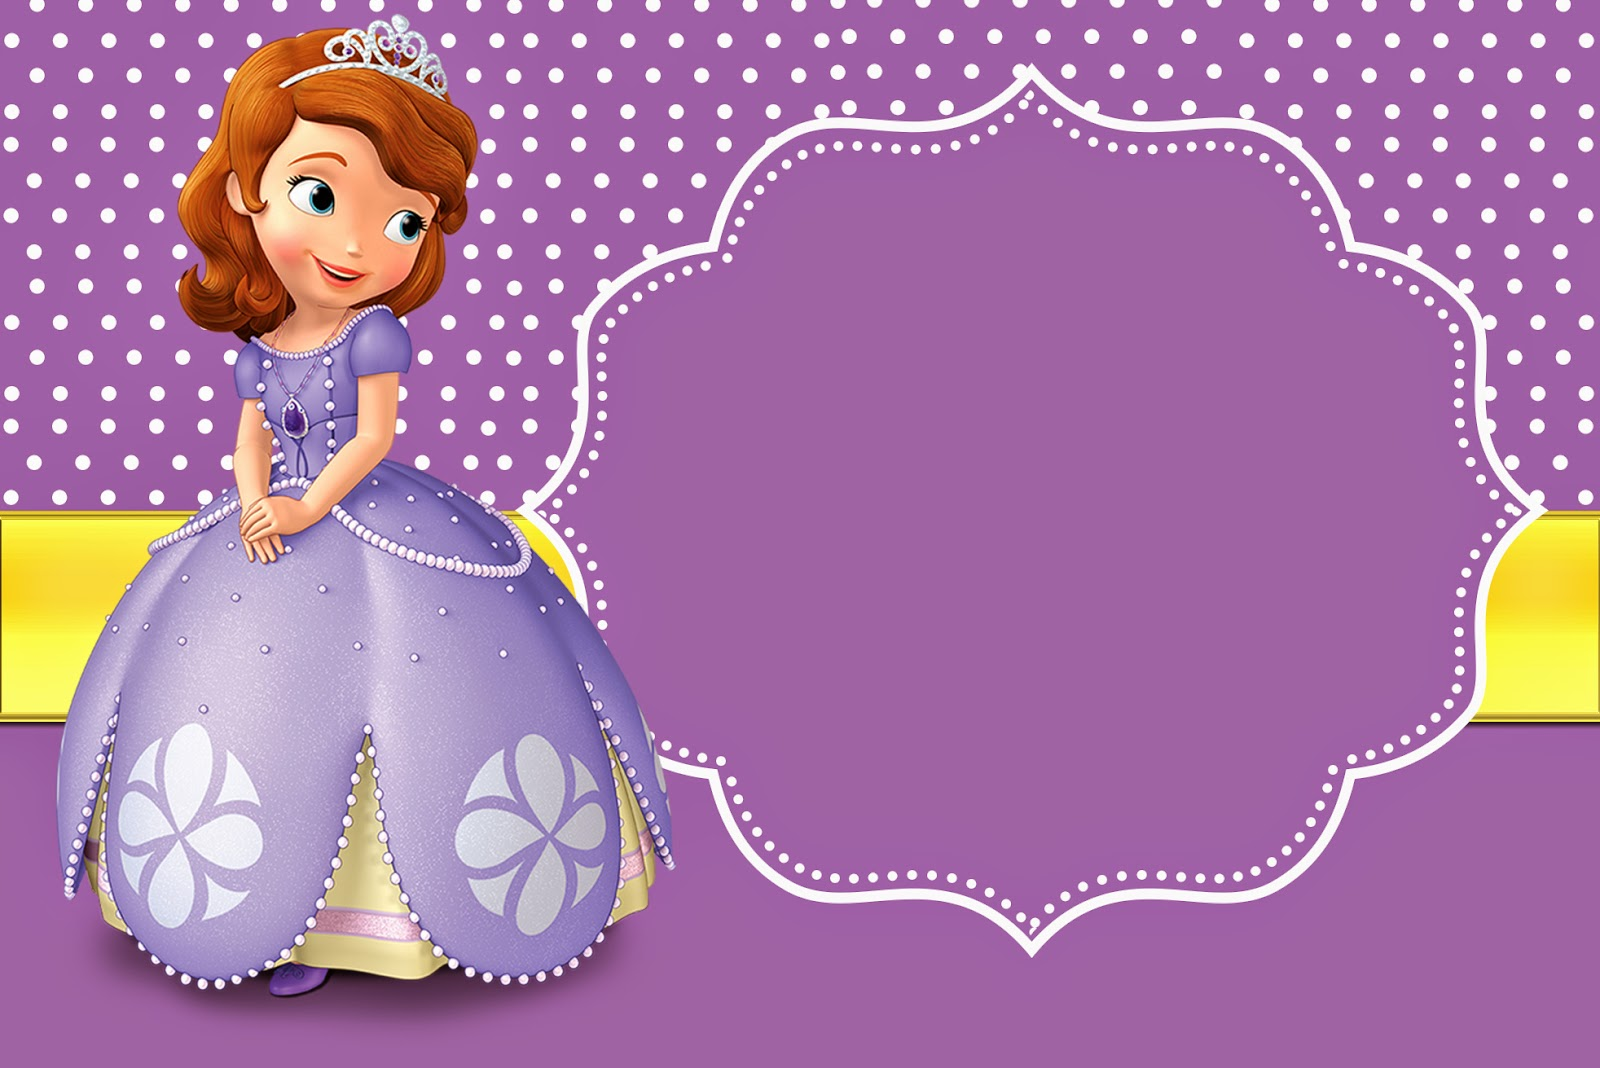 Invitaciones Para Imprimir De Sofia the First